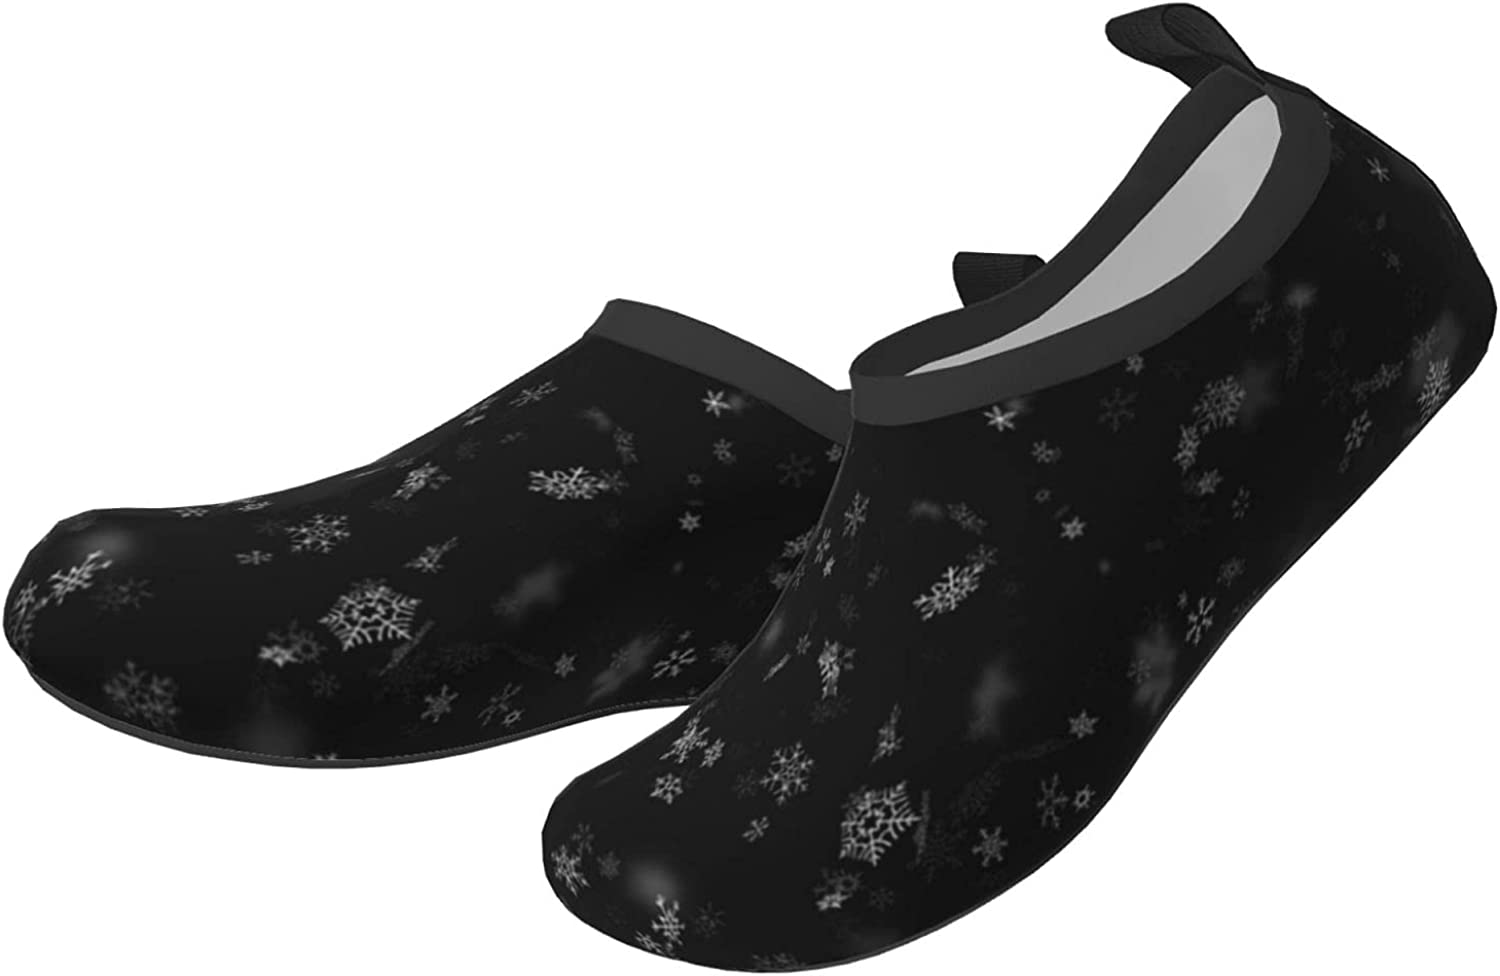 Starry Sky Children's Wading Shoes, Beach Shoes, Surfing Shoes, Breathable, Non-Slip, Lightweight, Thick Insoles Black